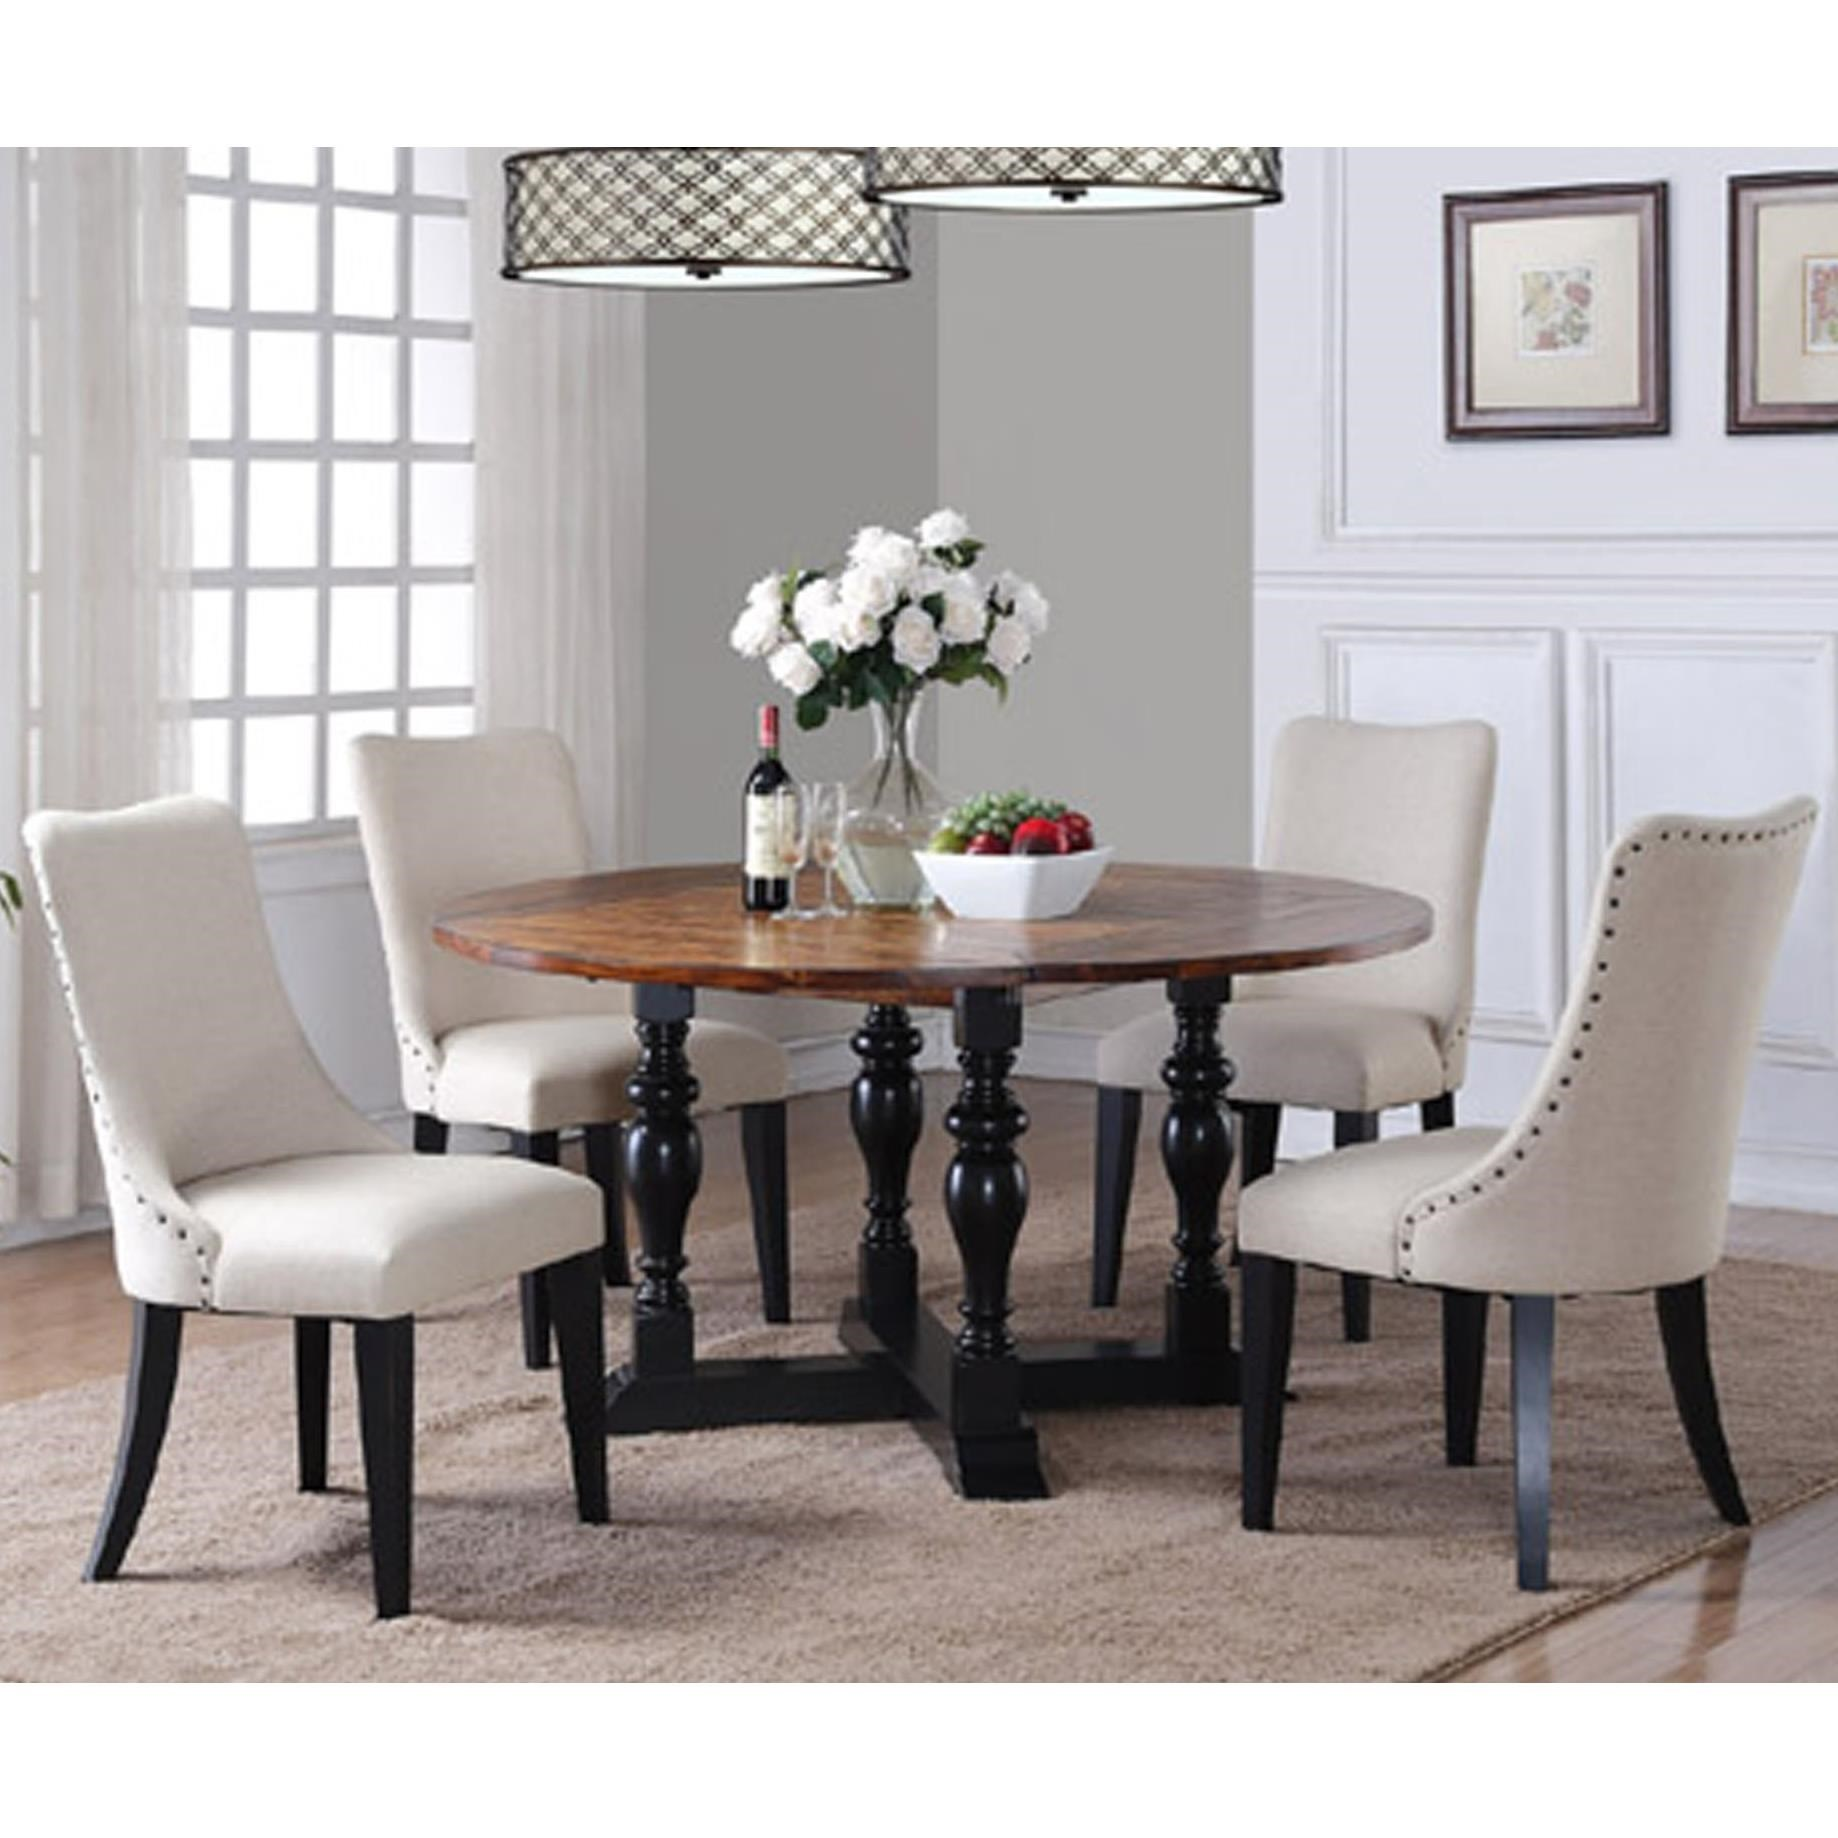 Weston 5 Piece Dining Set With Drop Leaf Table By Winners Only